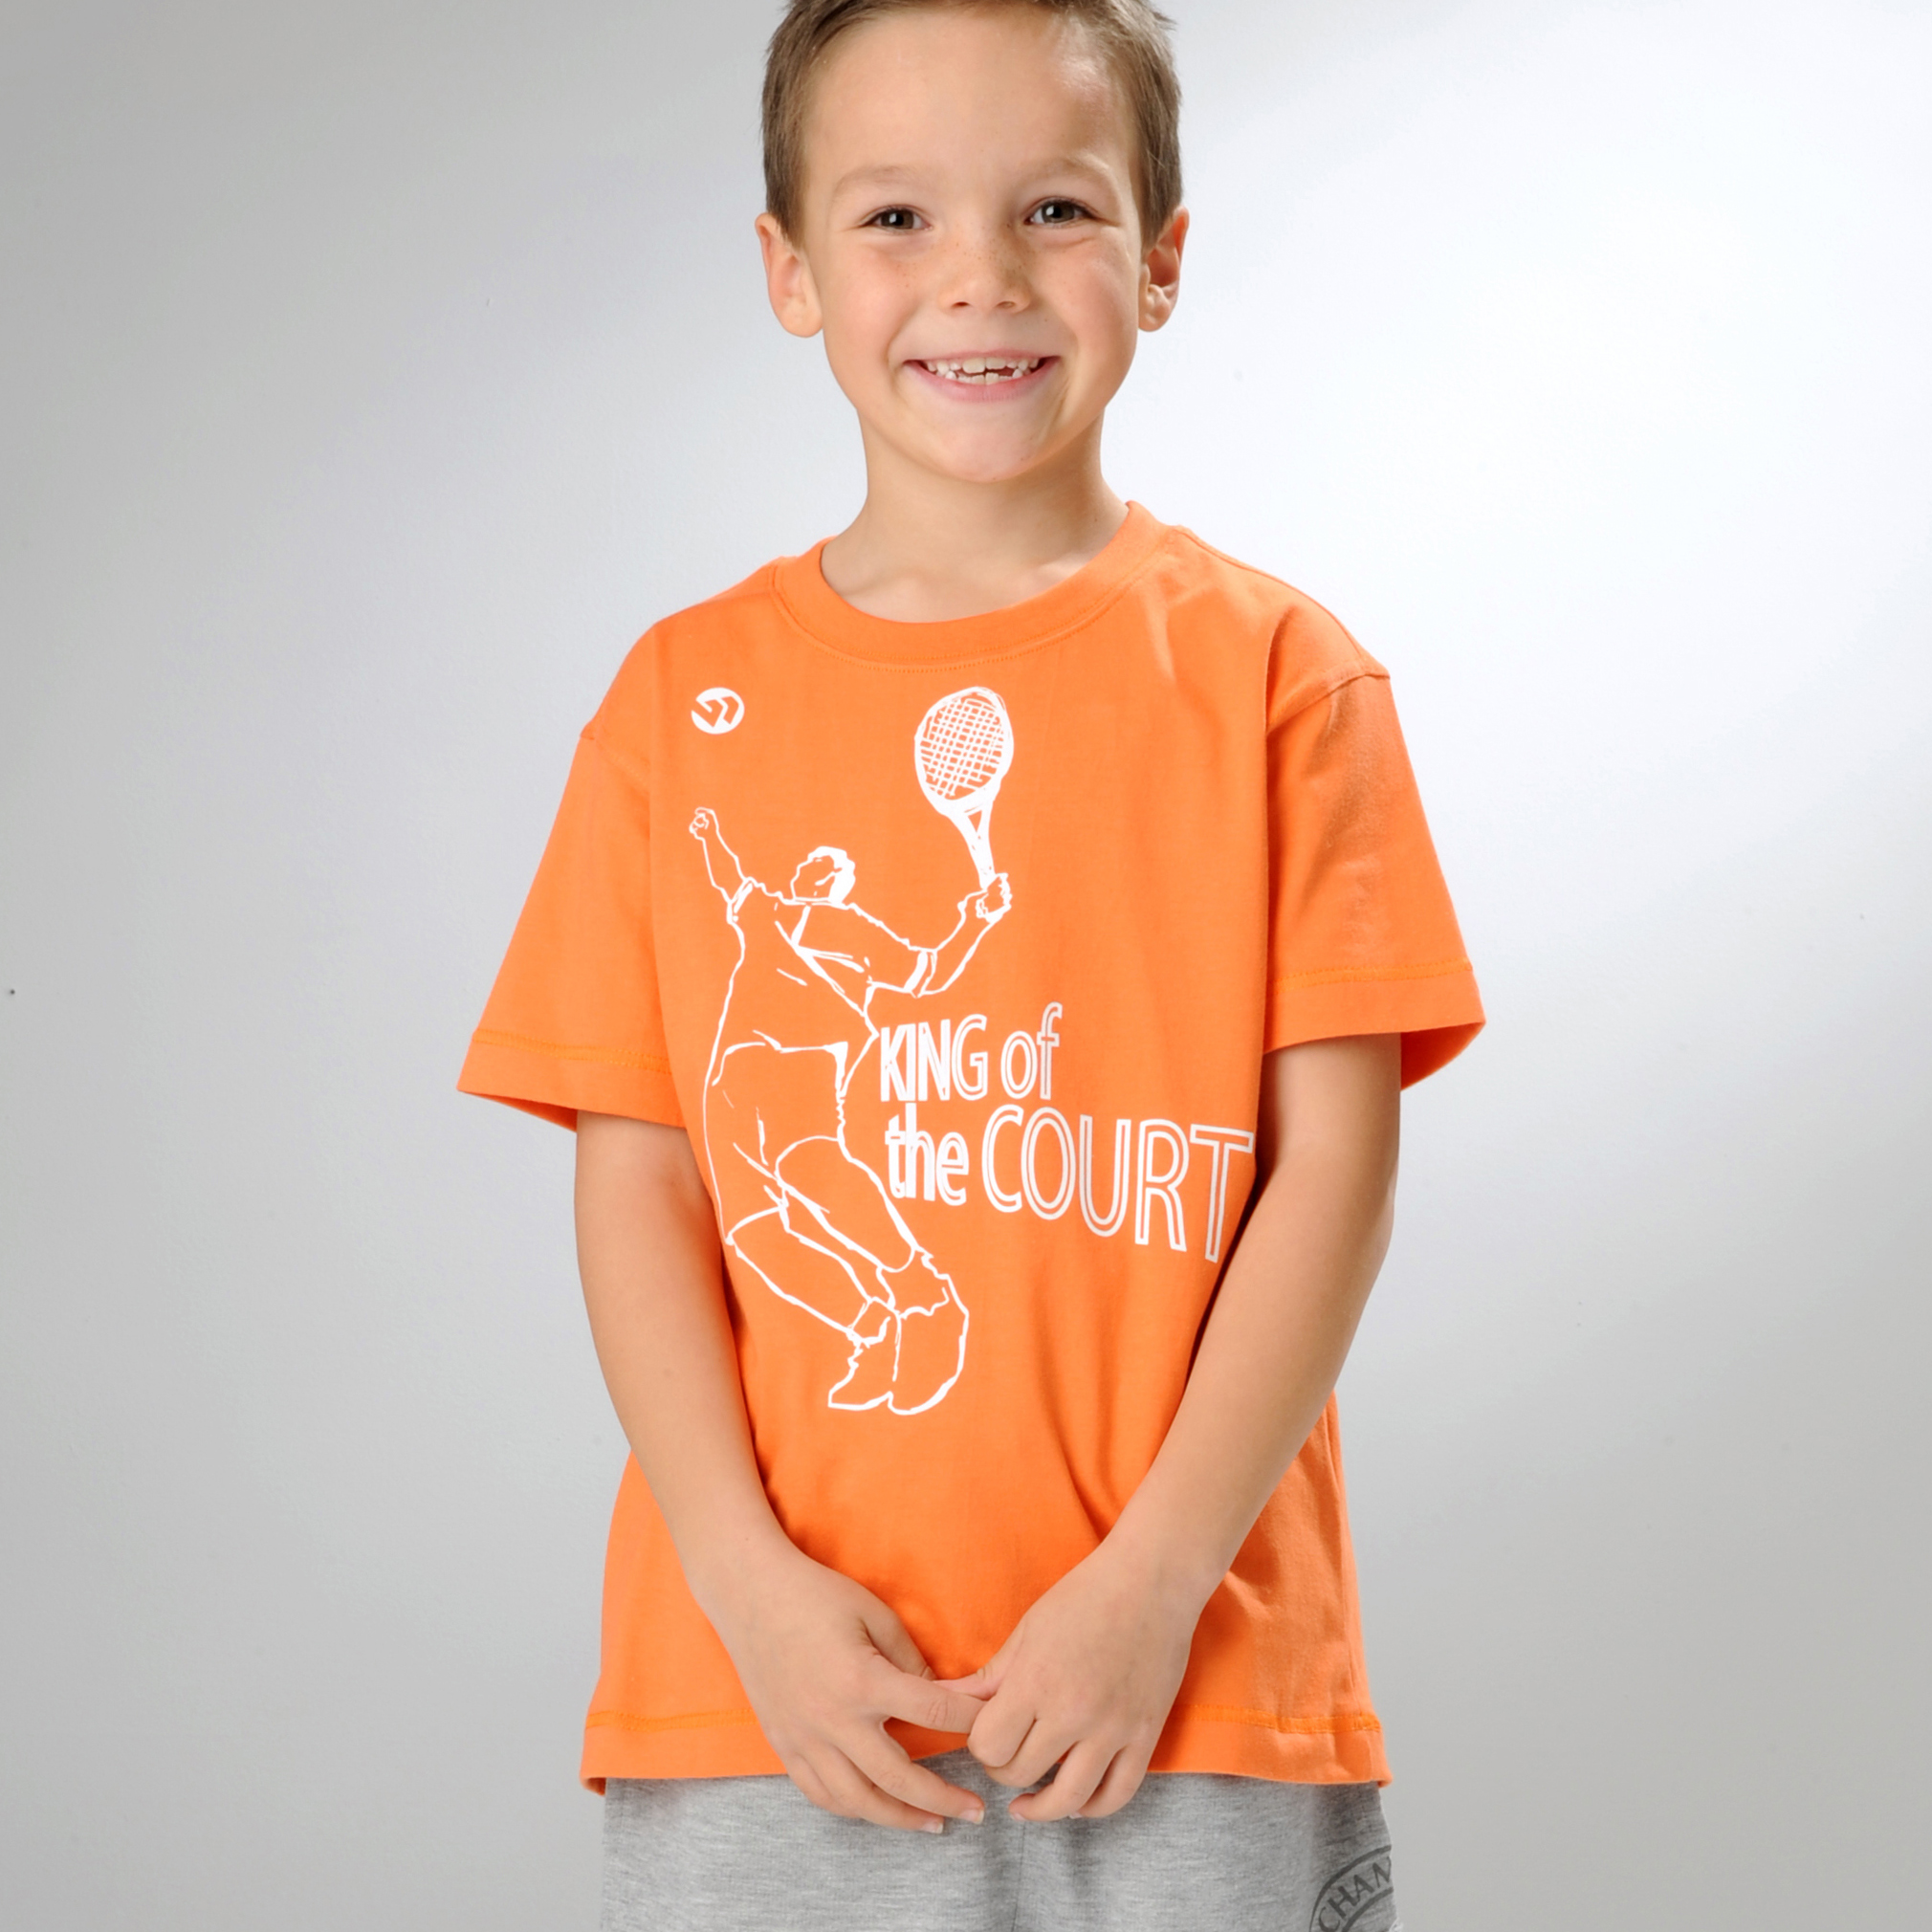 Wimbledon King of the Court T-Shirt - Orange - Infant Boys